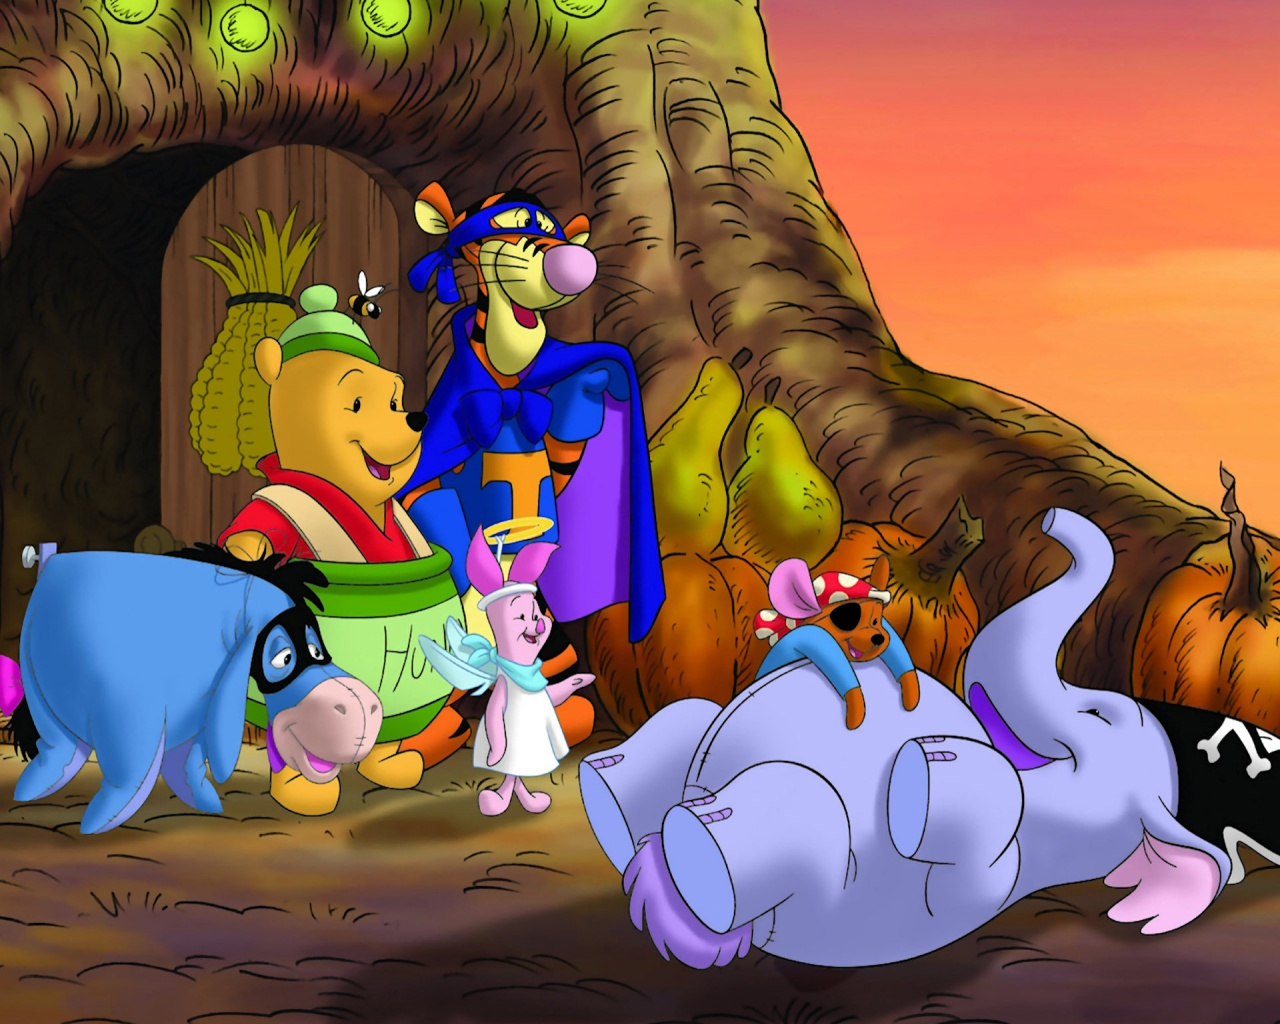 Happy halloween 2012 wallpaper for disney 39 s fan wallpaper for holiday - Winnie the pooh and friends wallpaper ...